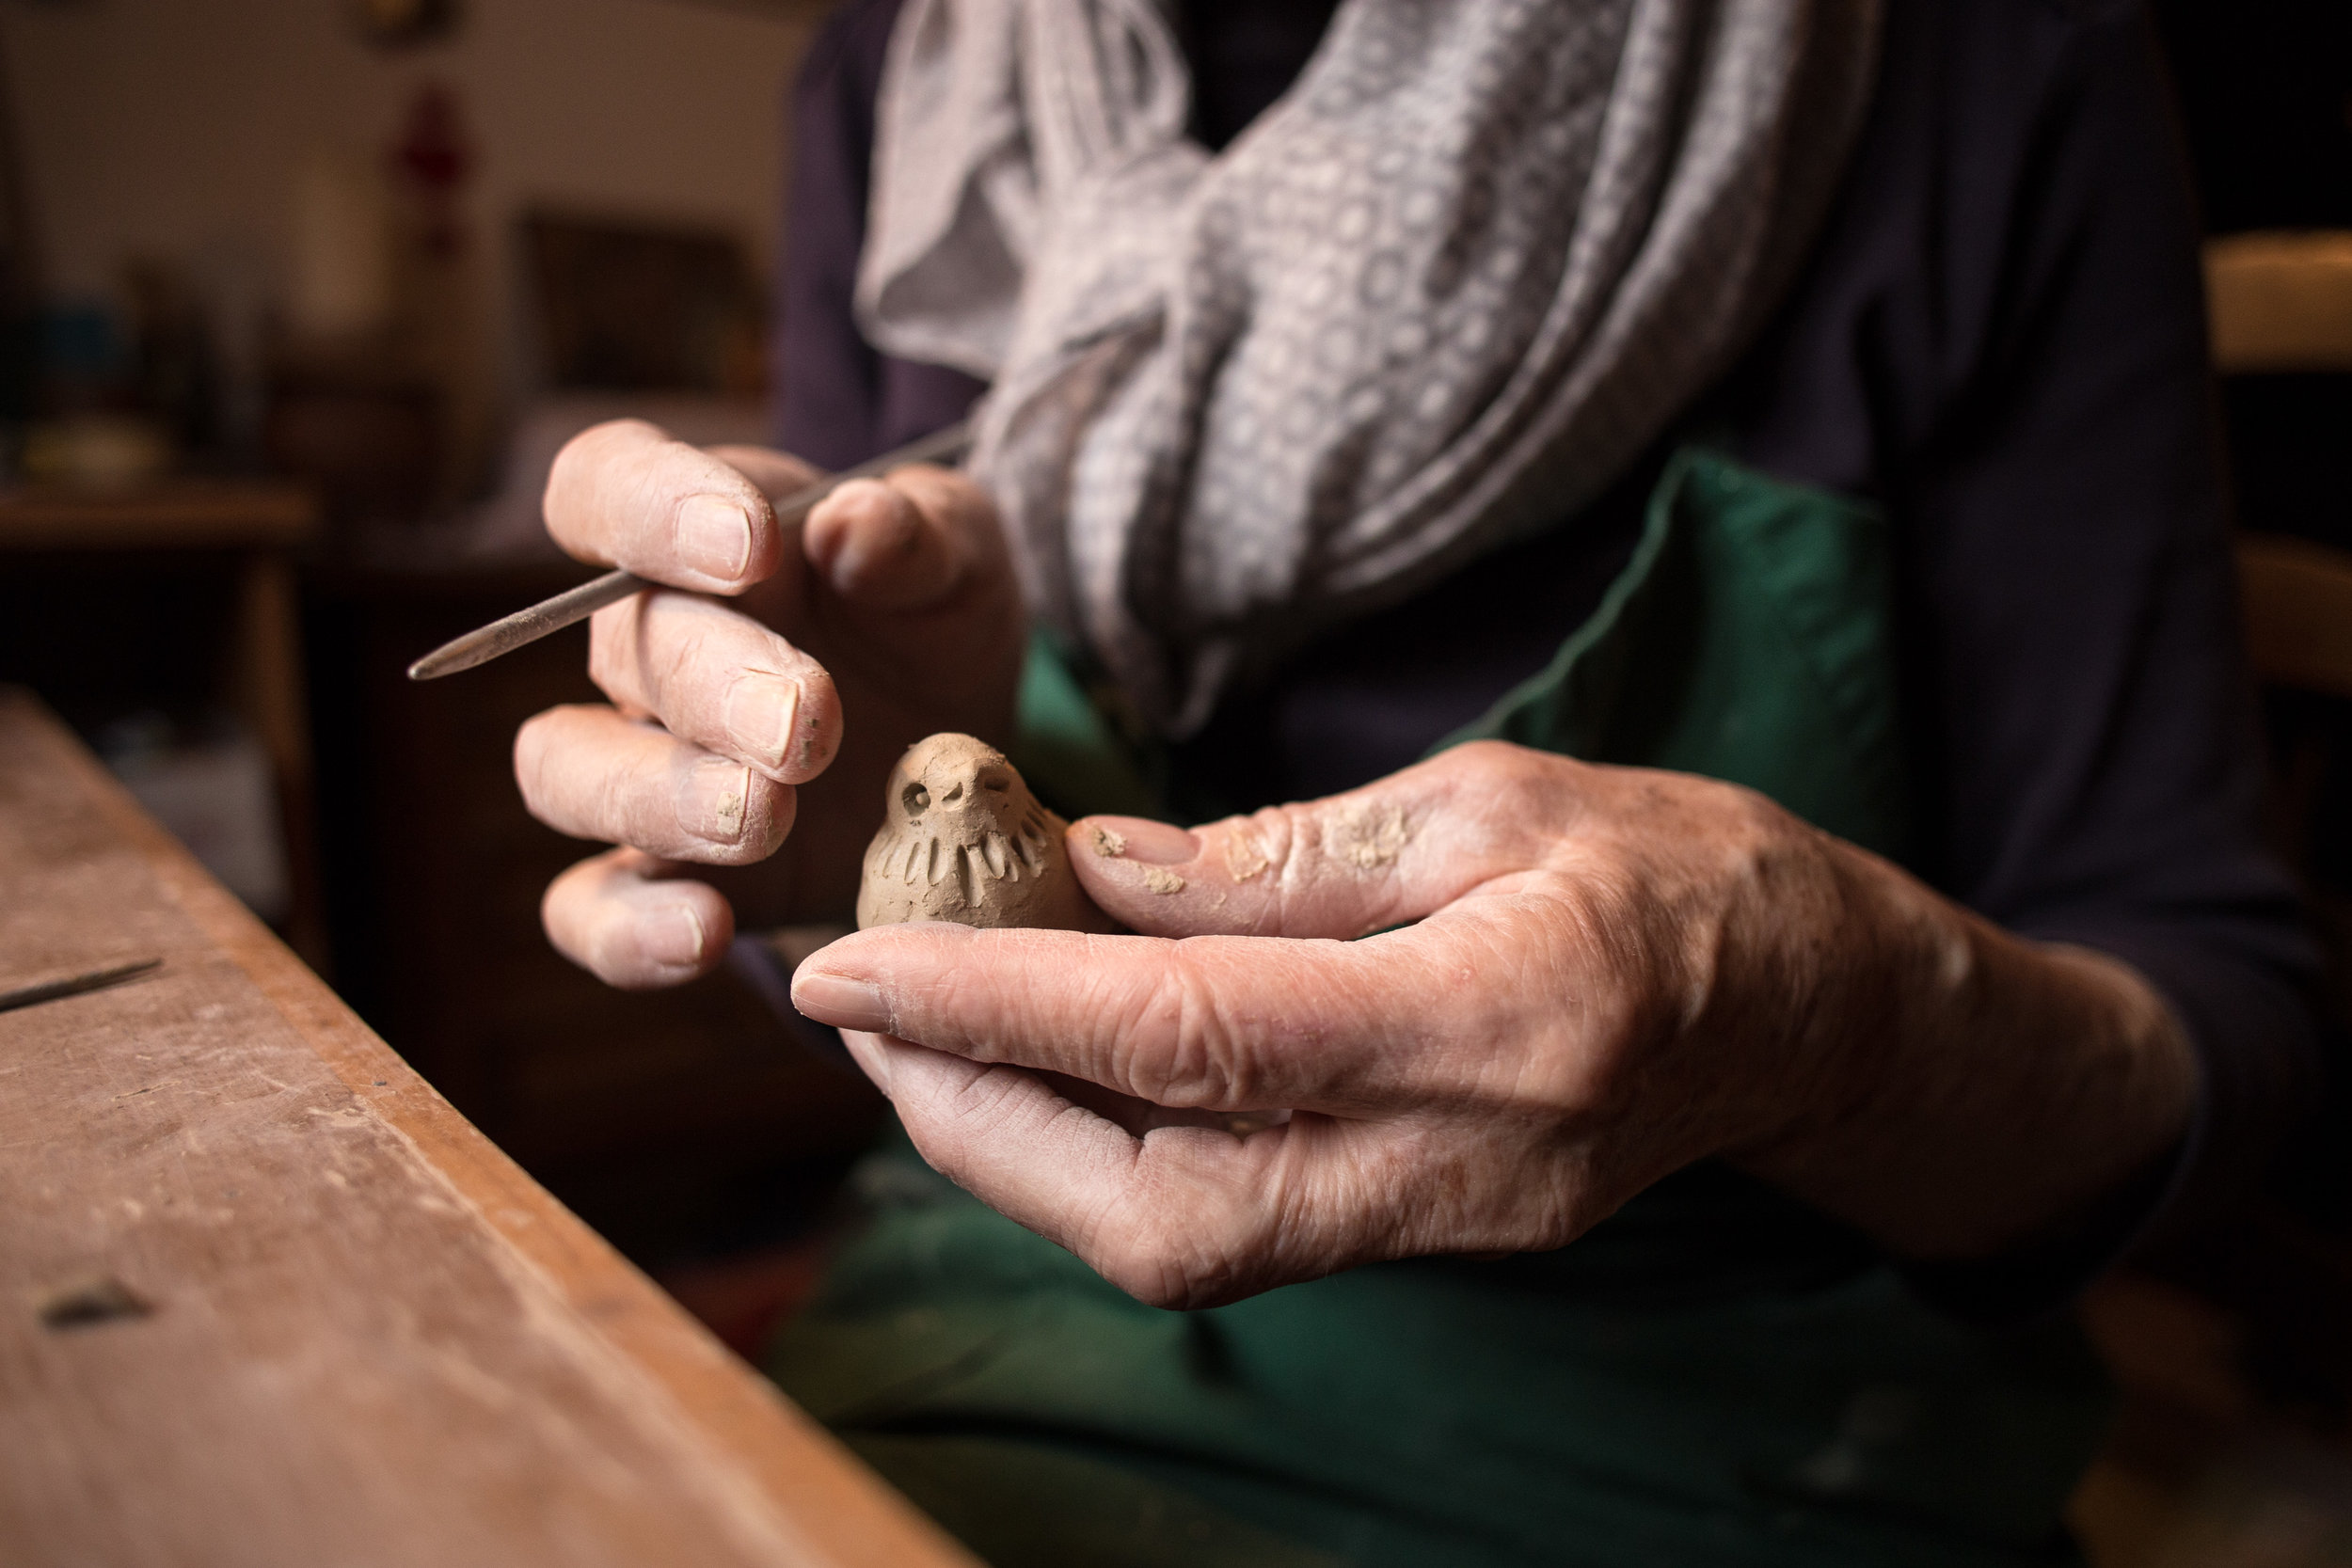 Photo description: Sculptor holding a metal pointed tool in their left hand and a sculpture of a bird in their left hand.